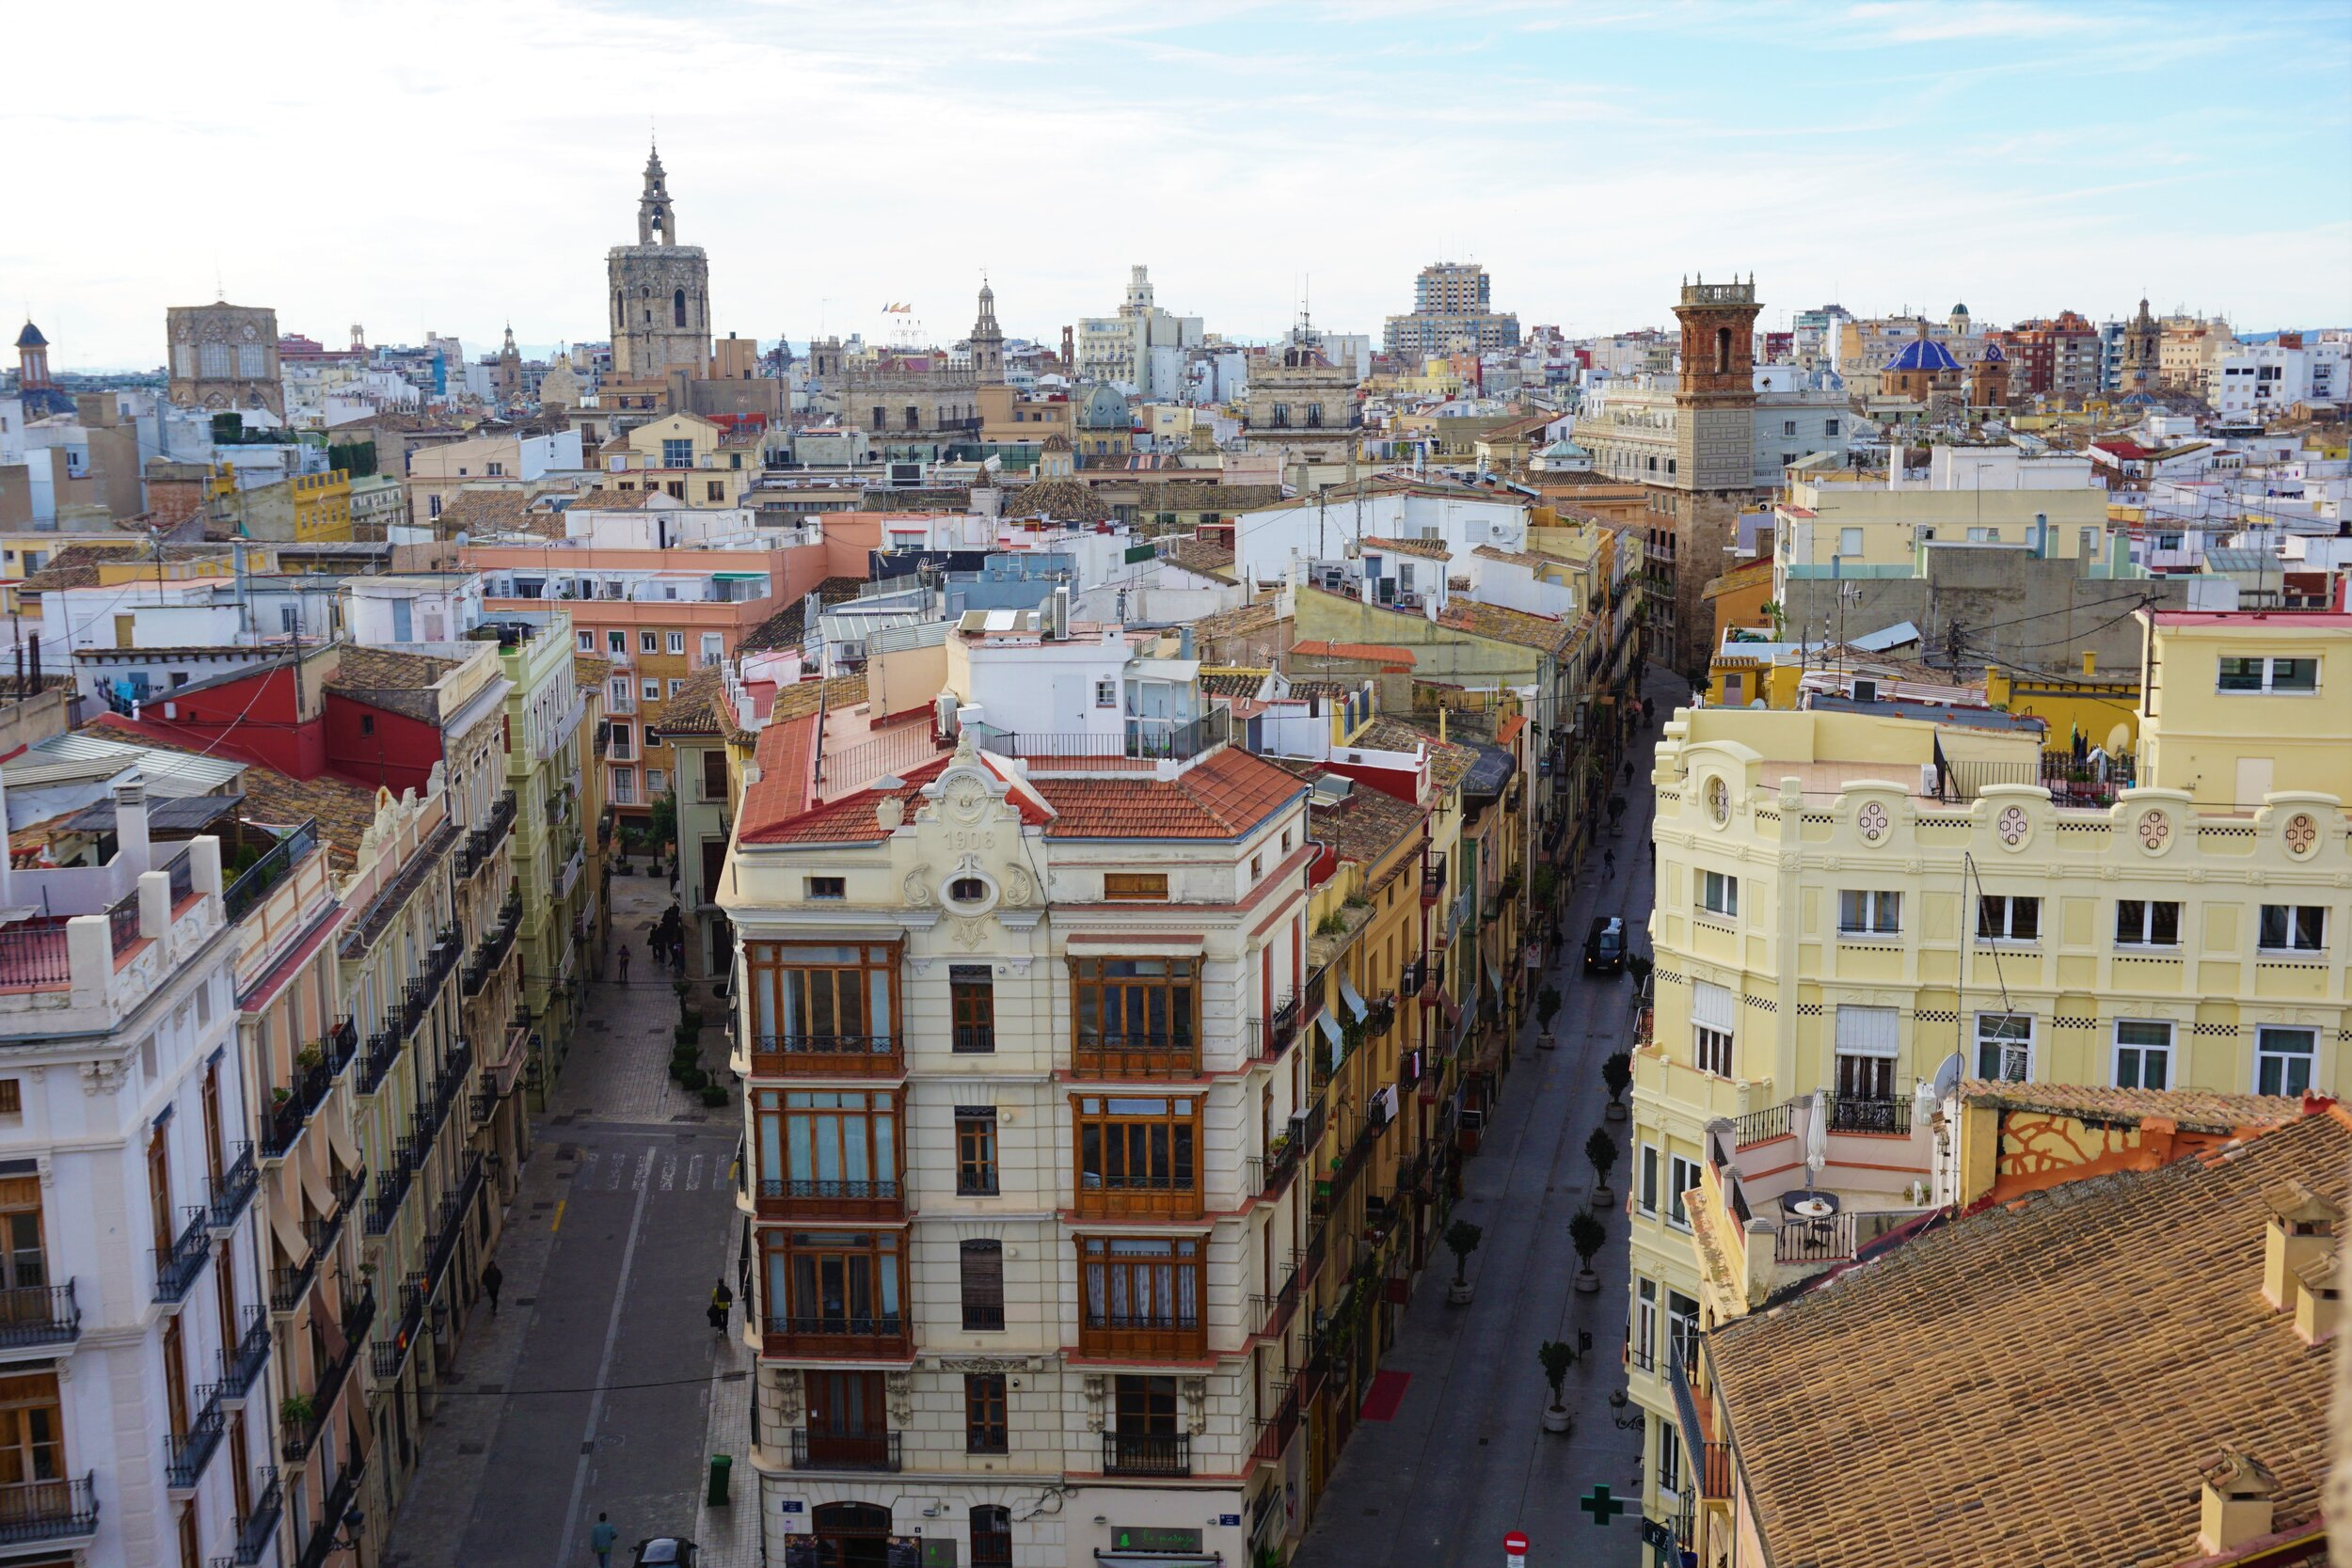 The city center where you can find some of the best Valencia restaurants